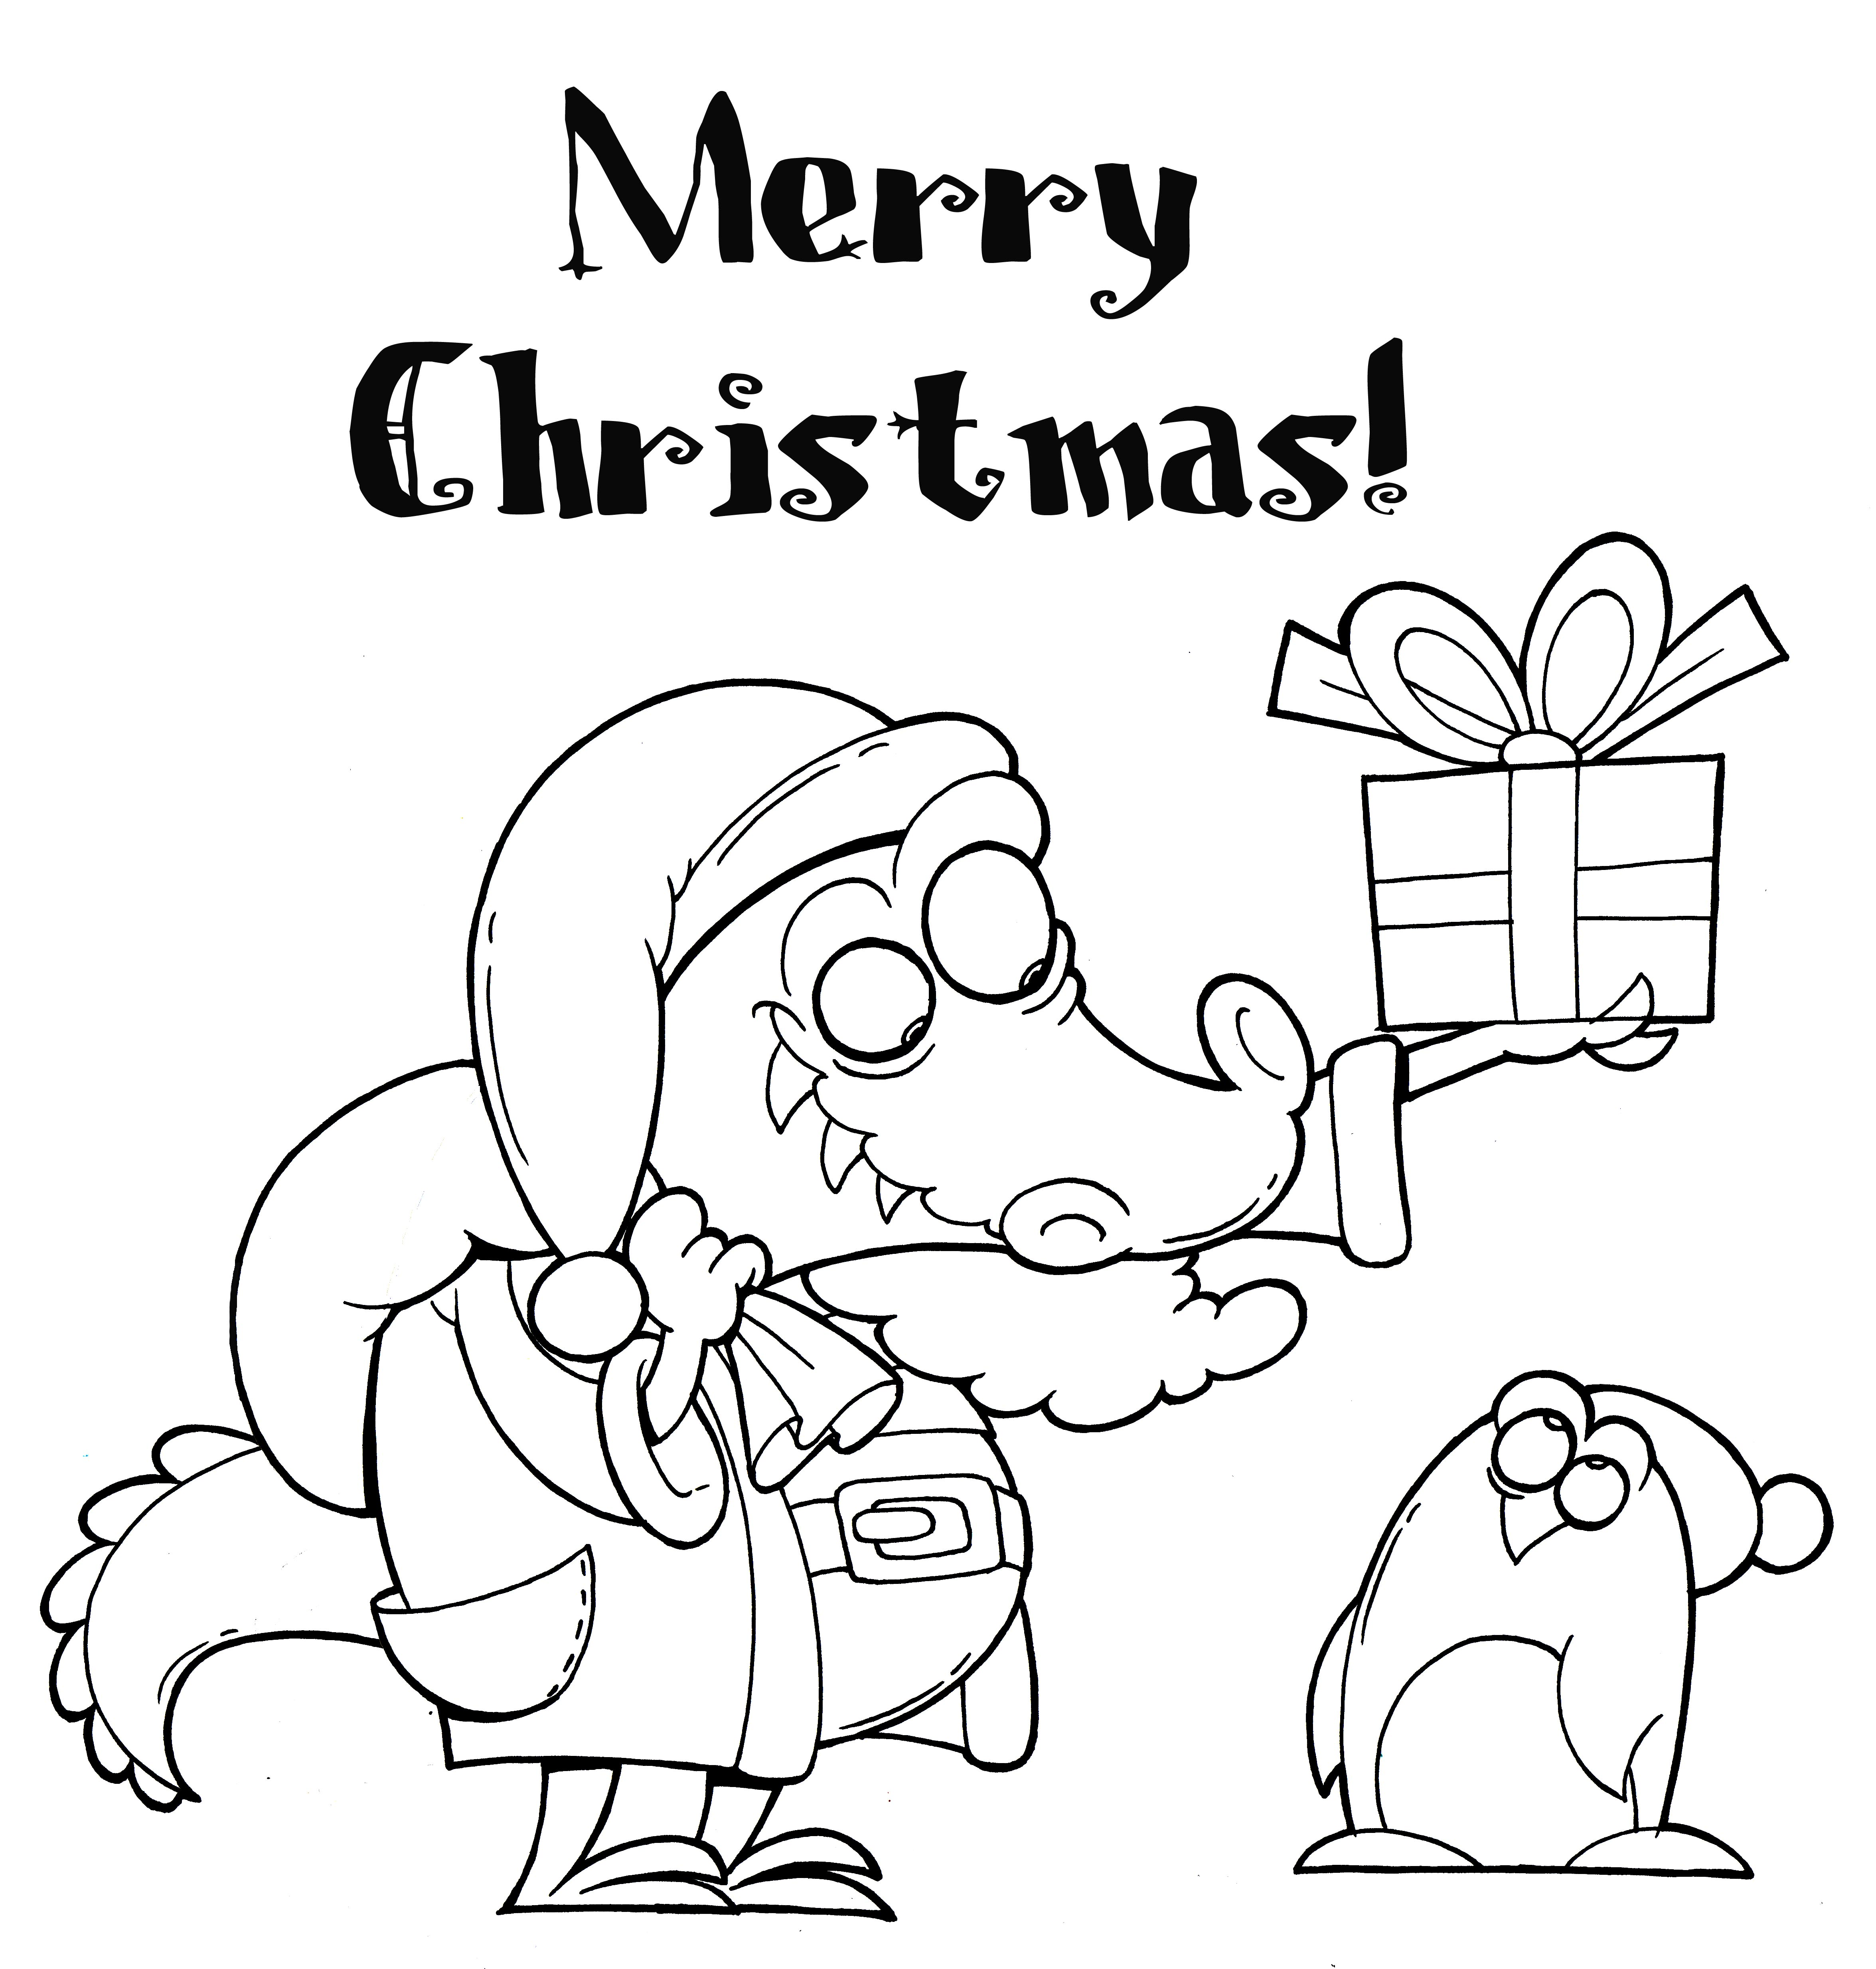 a coloring page that says merry christmas